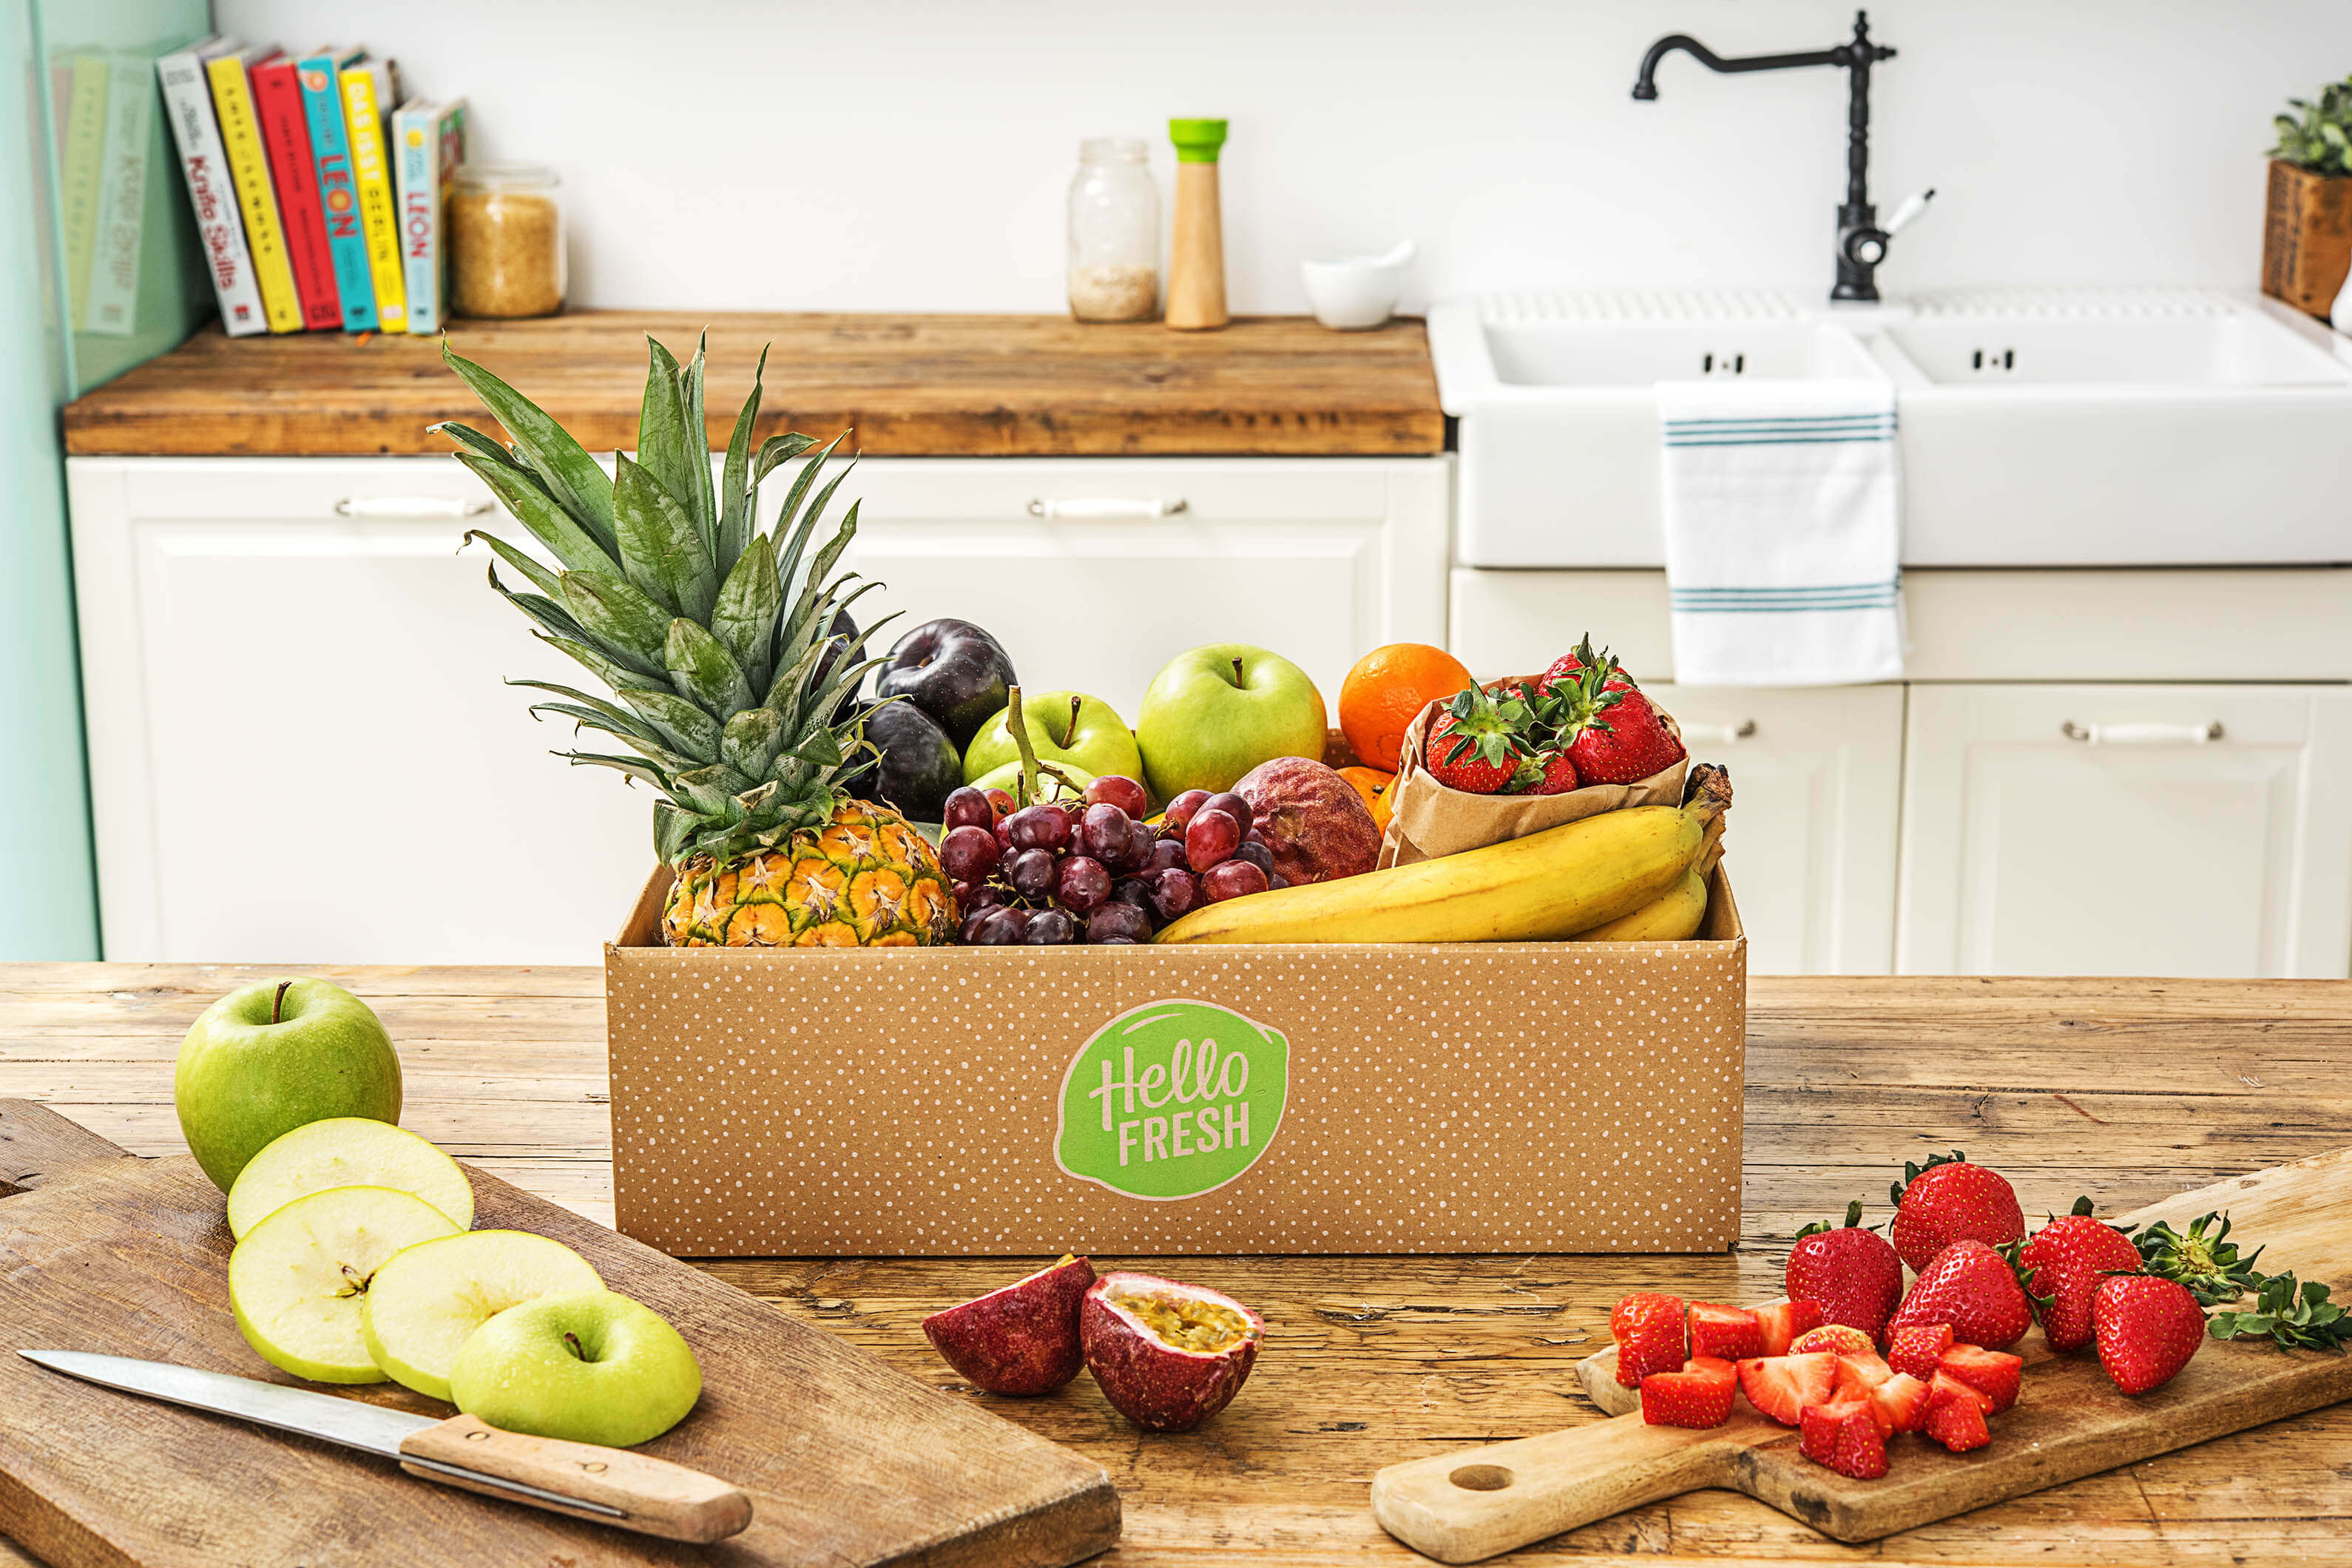 Benelux_Fruitbox_packshot_360x300_(2).jpg